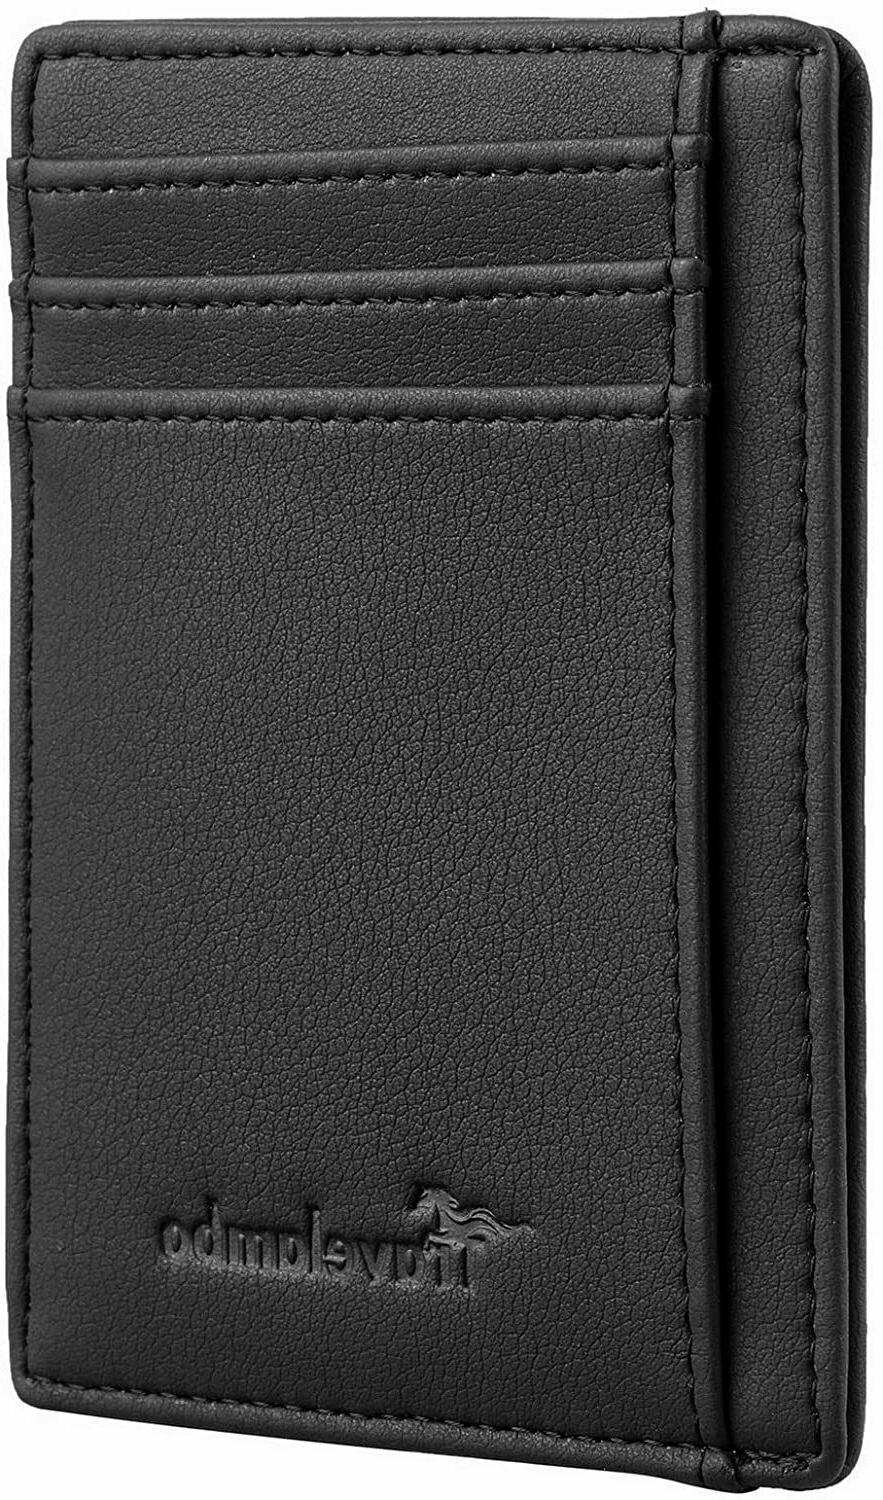 Mens RFID Leather Money Clip Credit Card Coin Holder